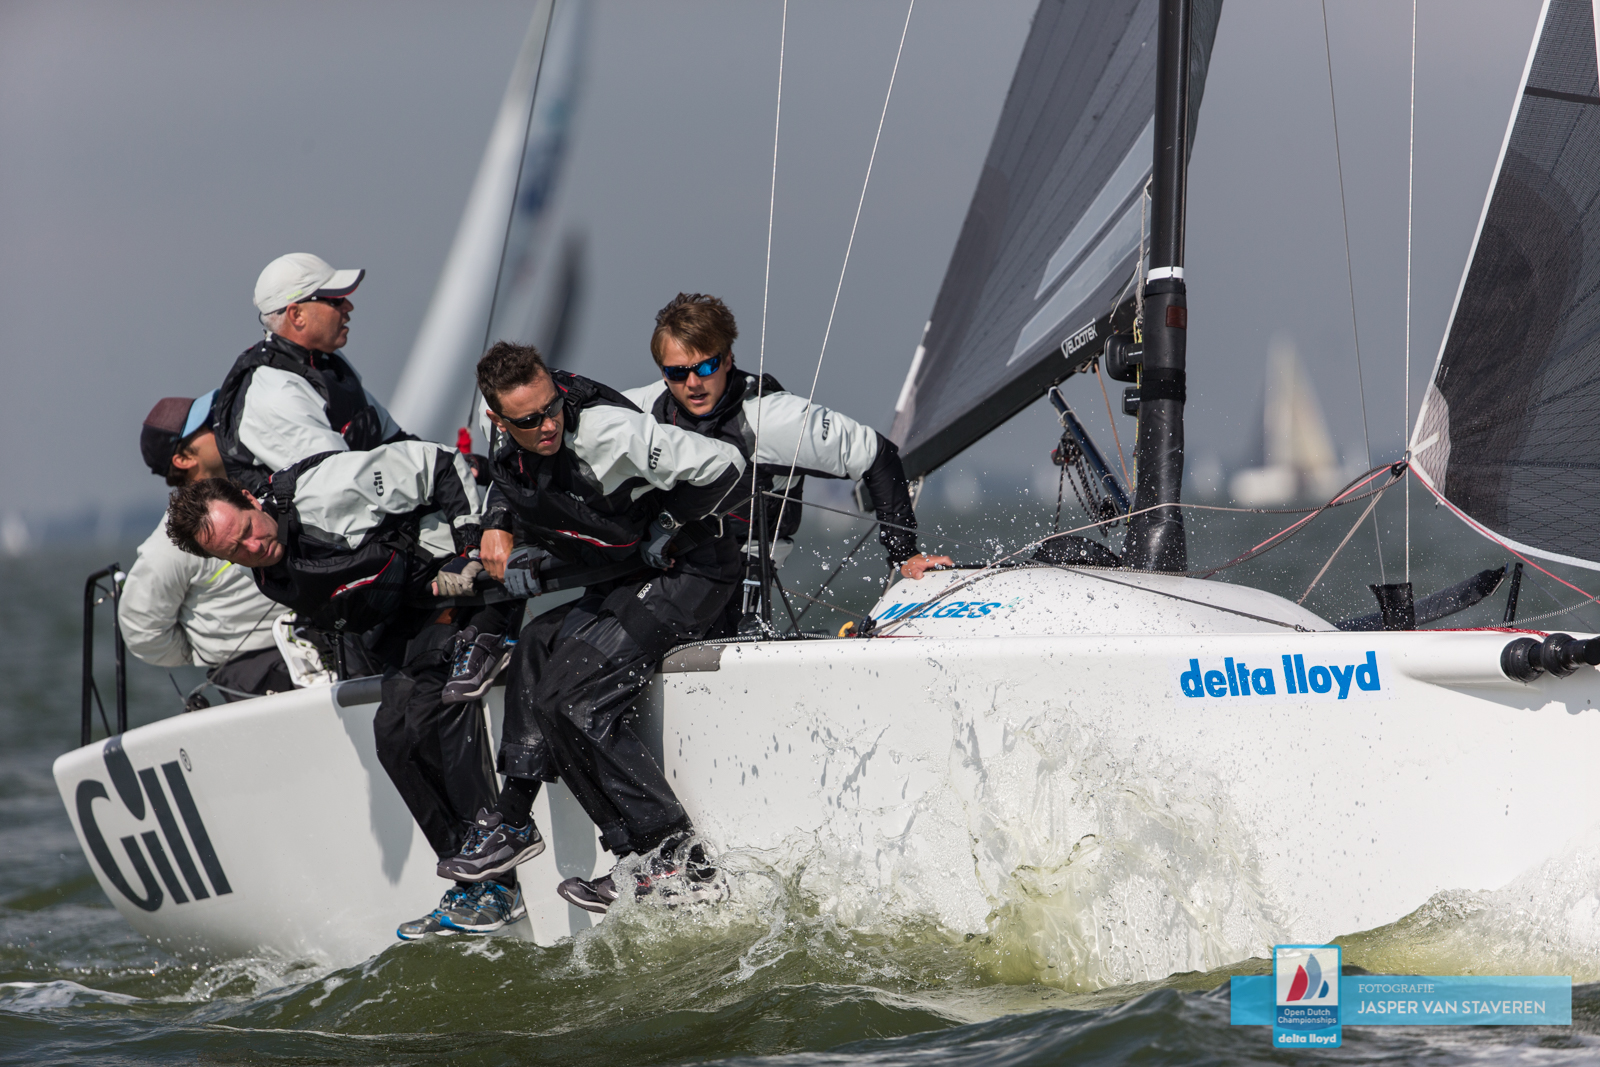 Miles Quinton's Gill Race Team GBR694 - photo Jasper van Staveren